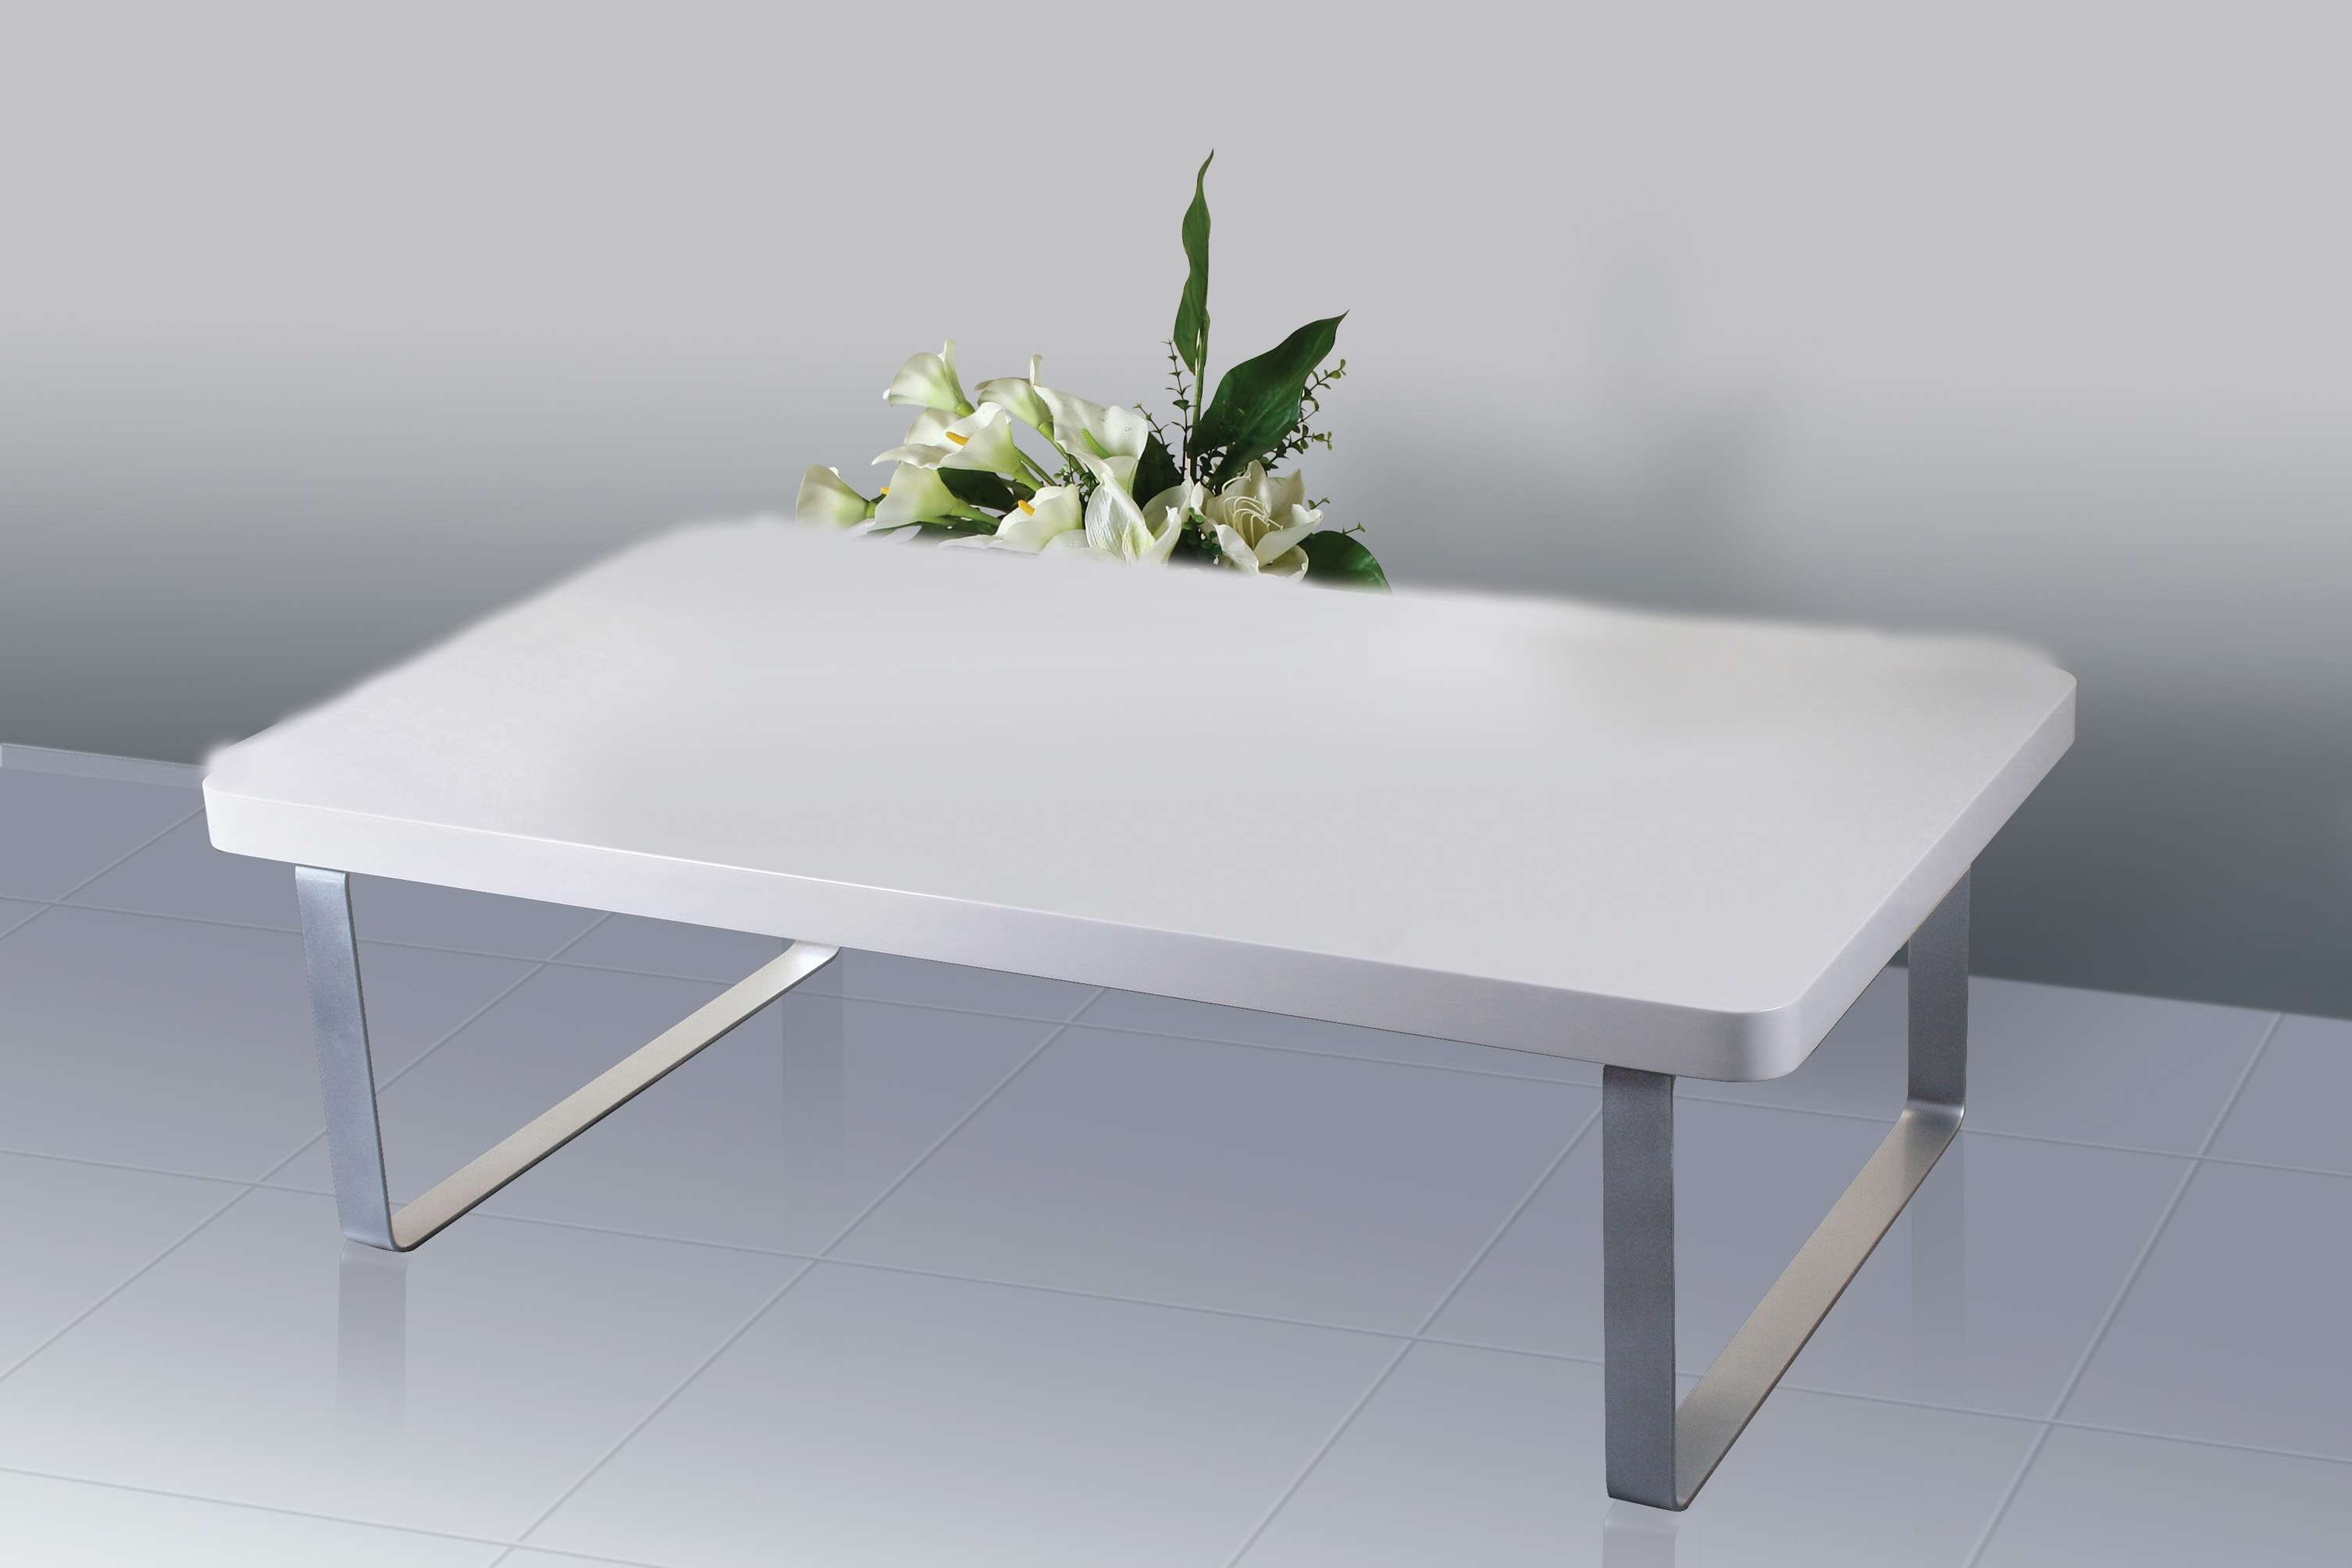 Well Known Coffee Tables White High Gloss Intended For White High Gloss Coffee Table Australia On With Hd Resolution (View 5 of 20)